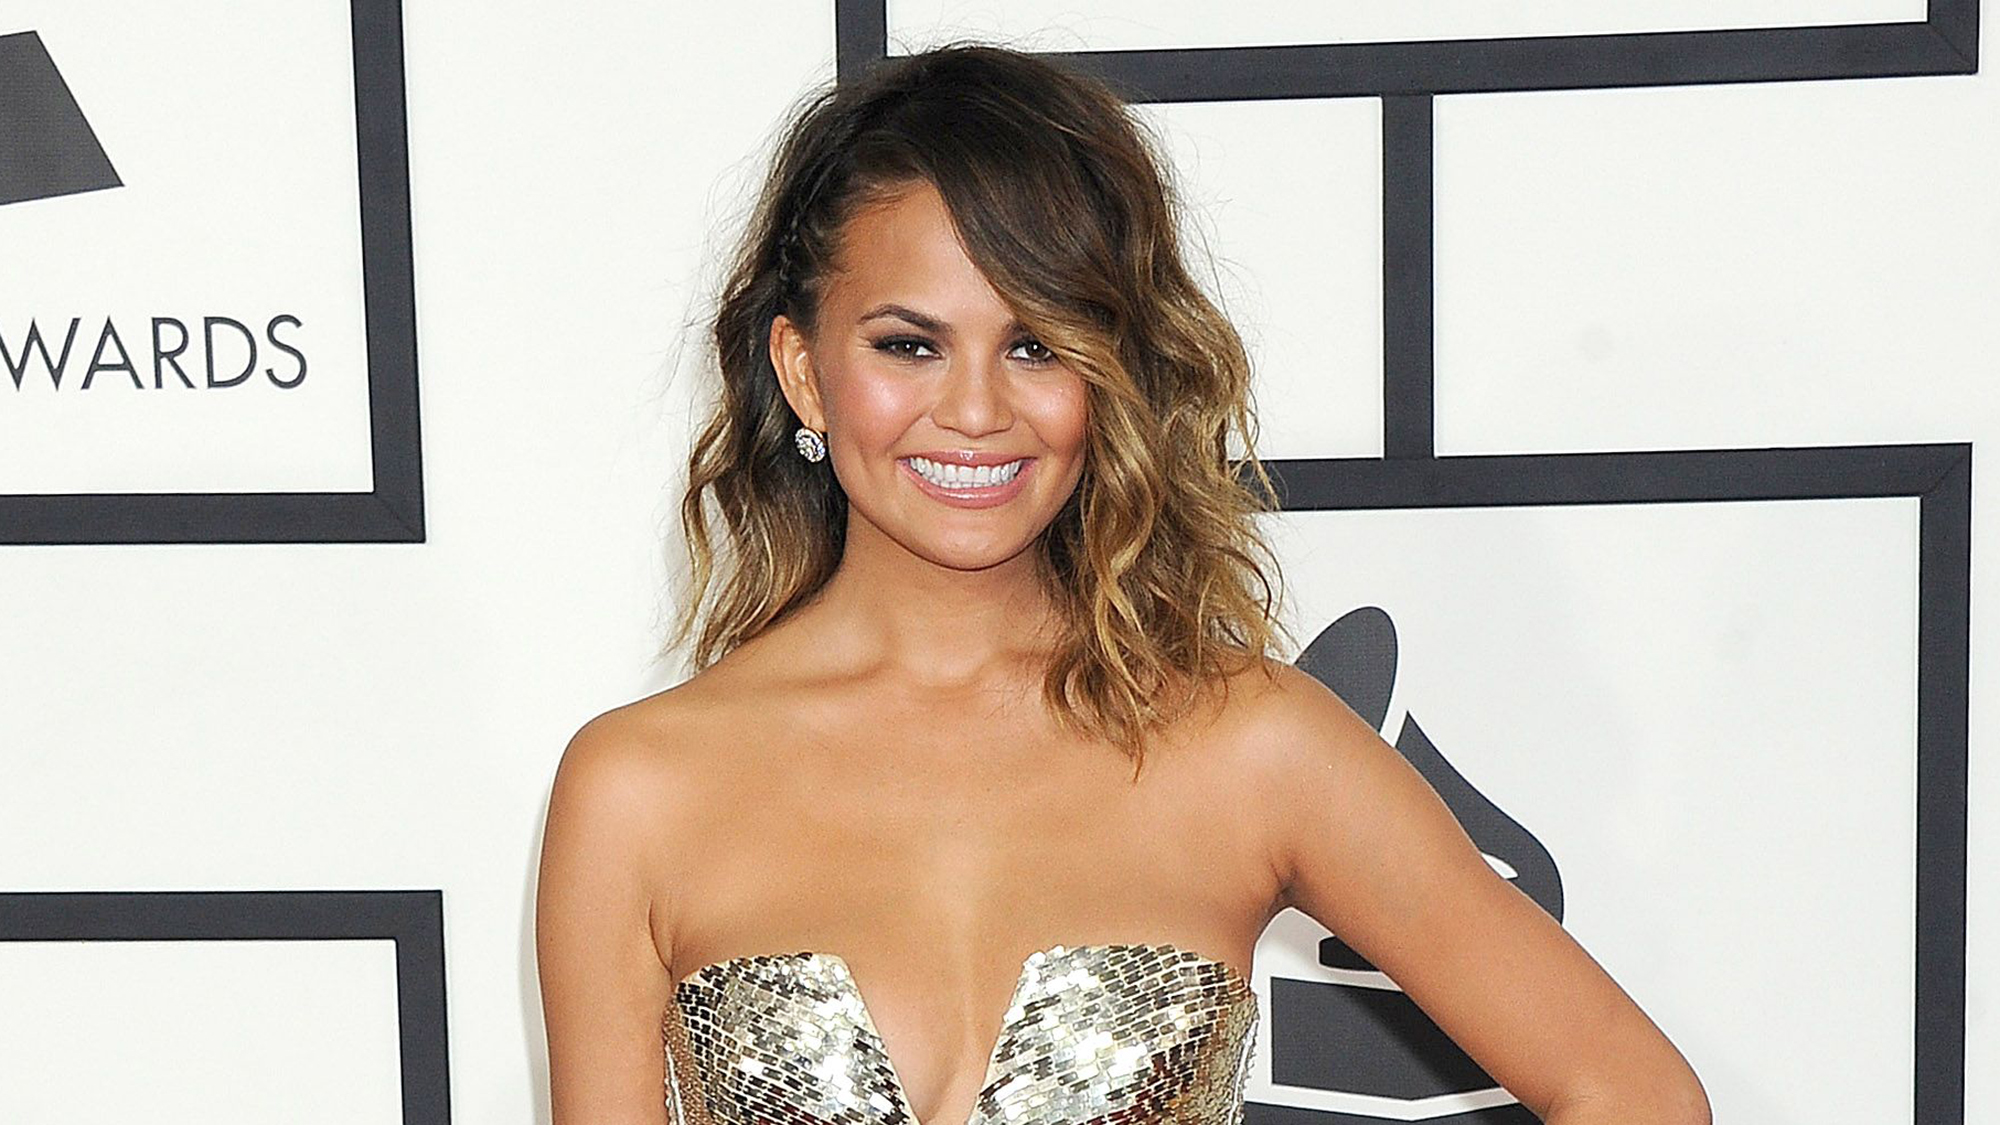 Balayage Is The Hottest New Hair Trend And We Love It